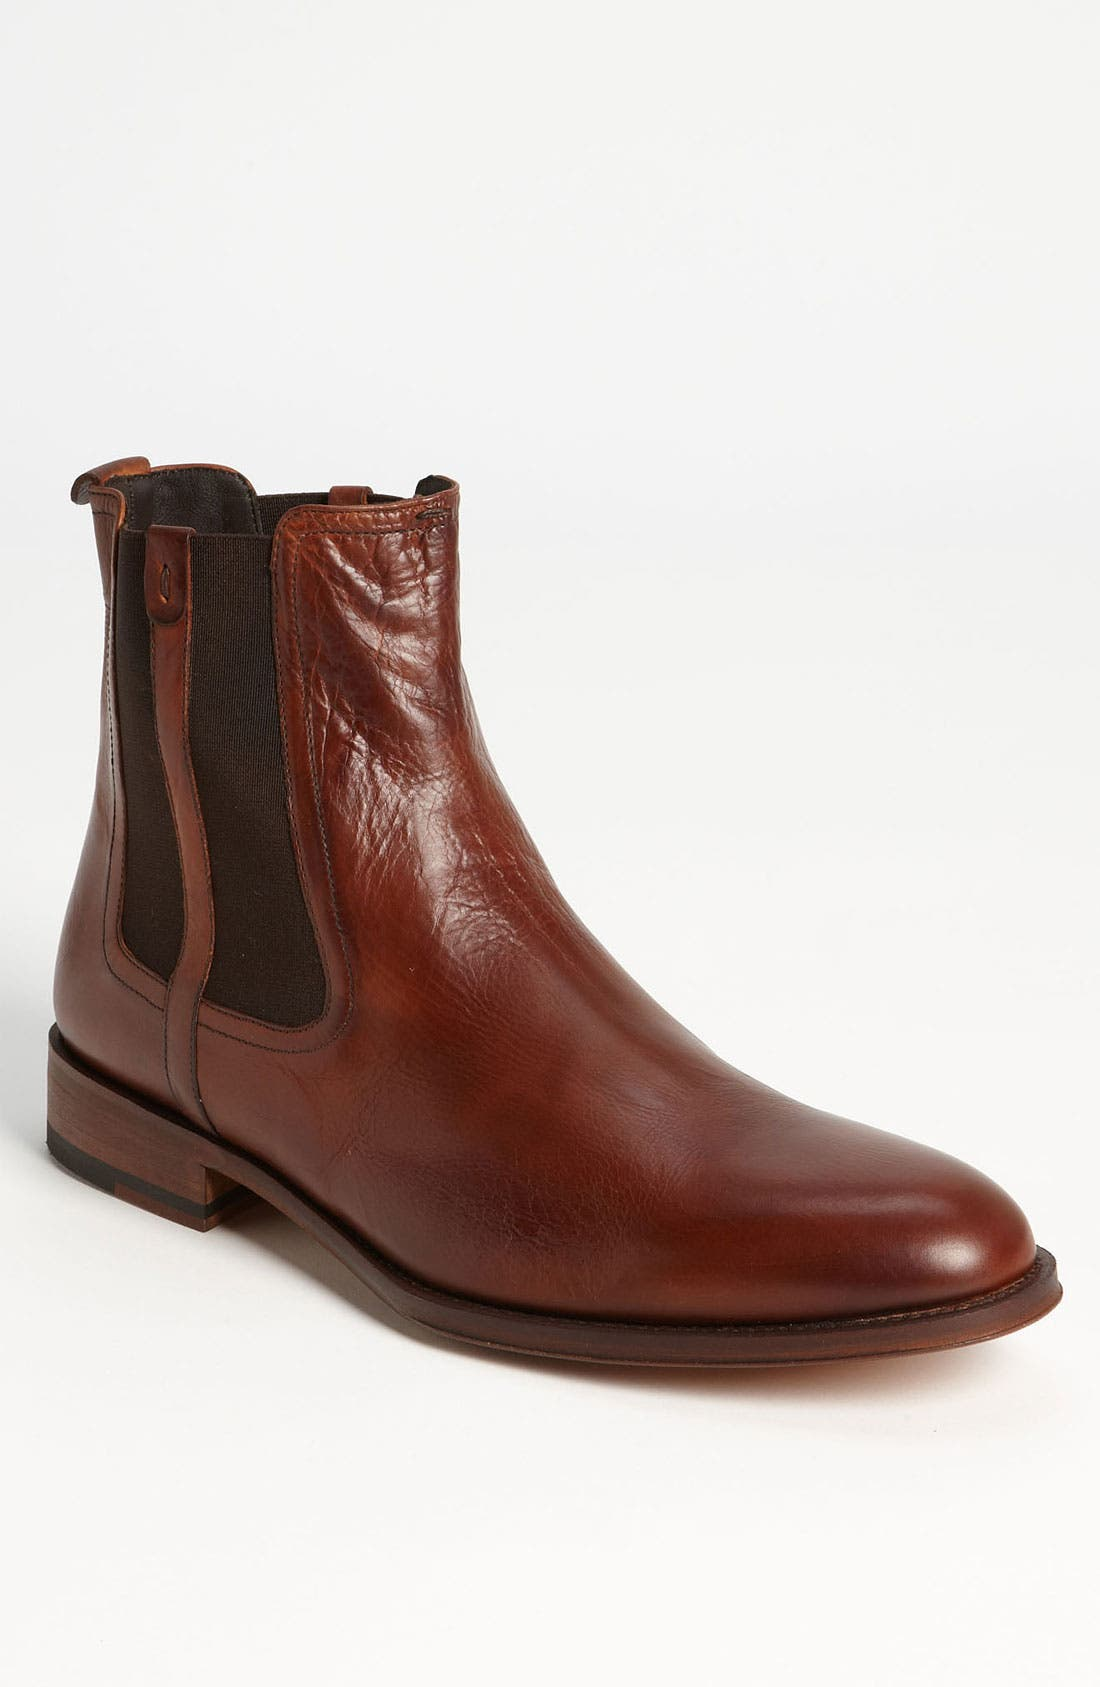 Alternate Image 1 Selected - Magnanni 'Desperado' Chelsea Boot